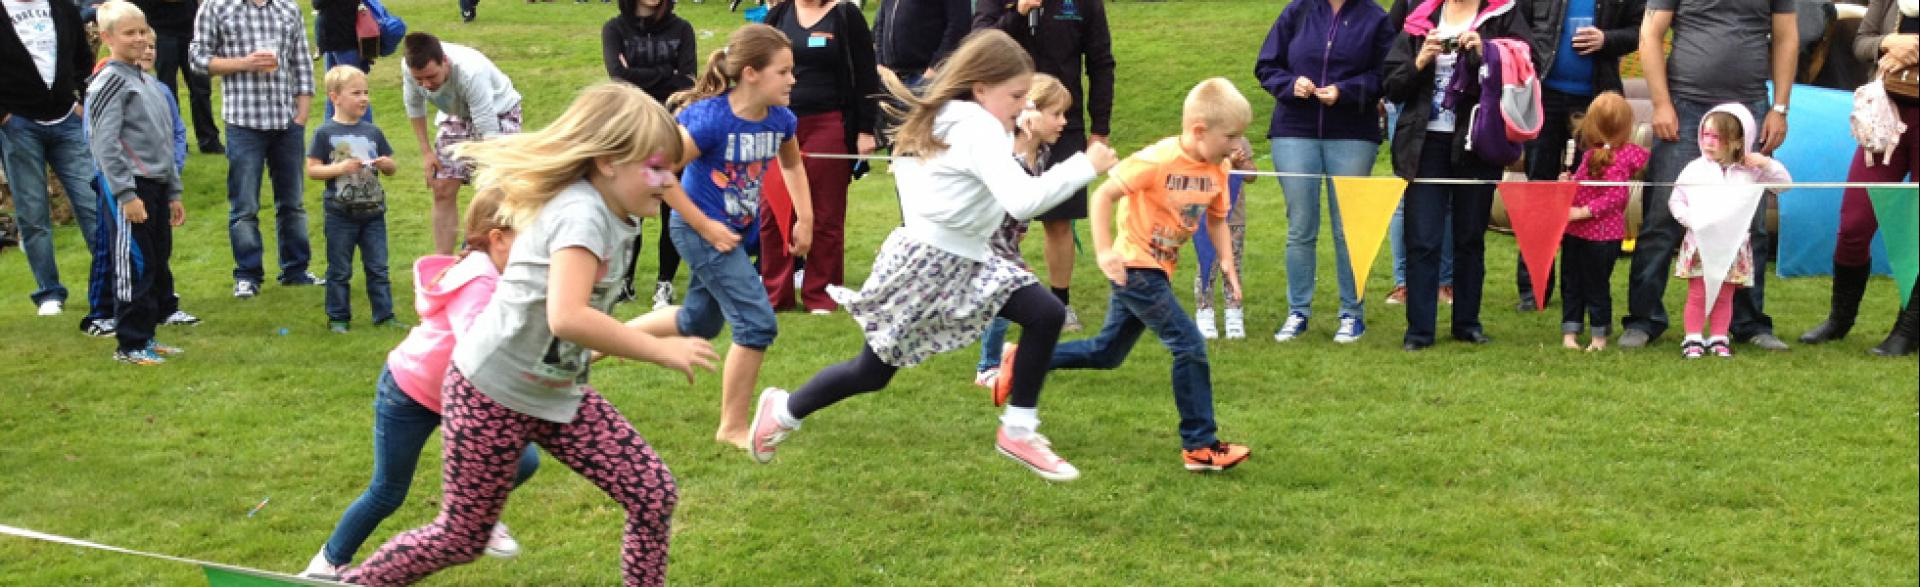 Corporate Family Fun Day, Aberdeen, August 2014